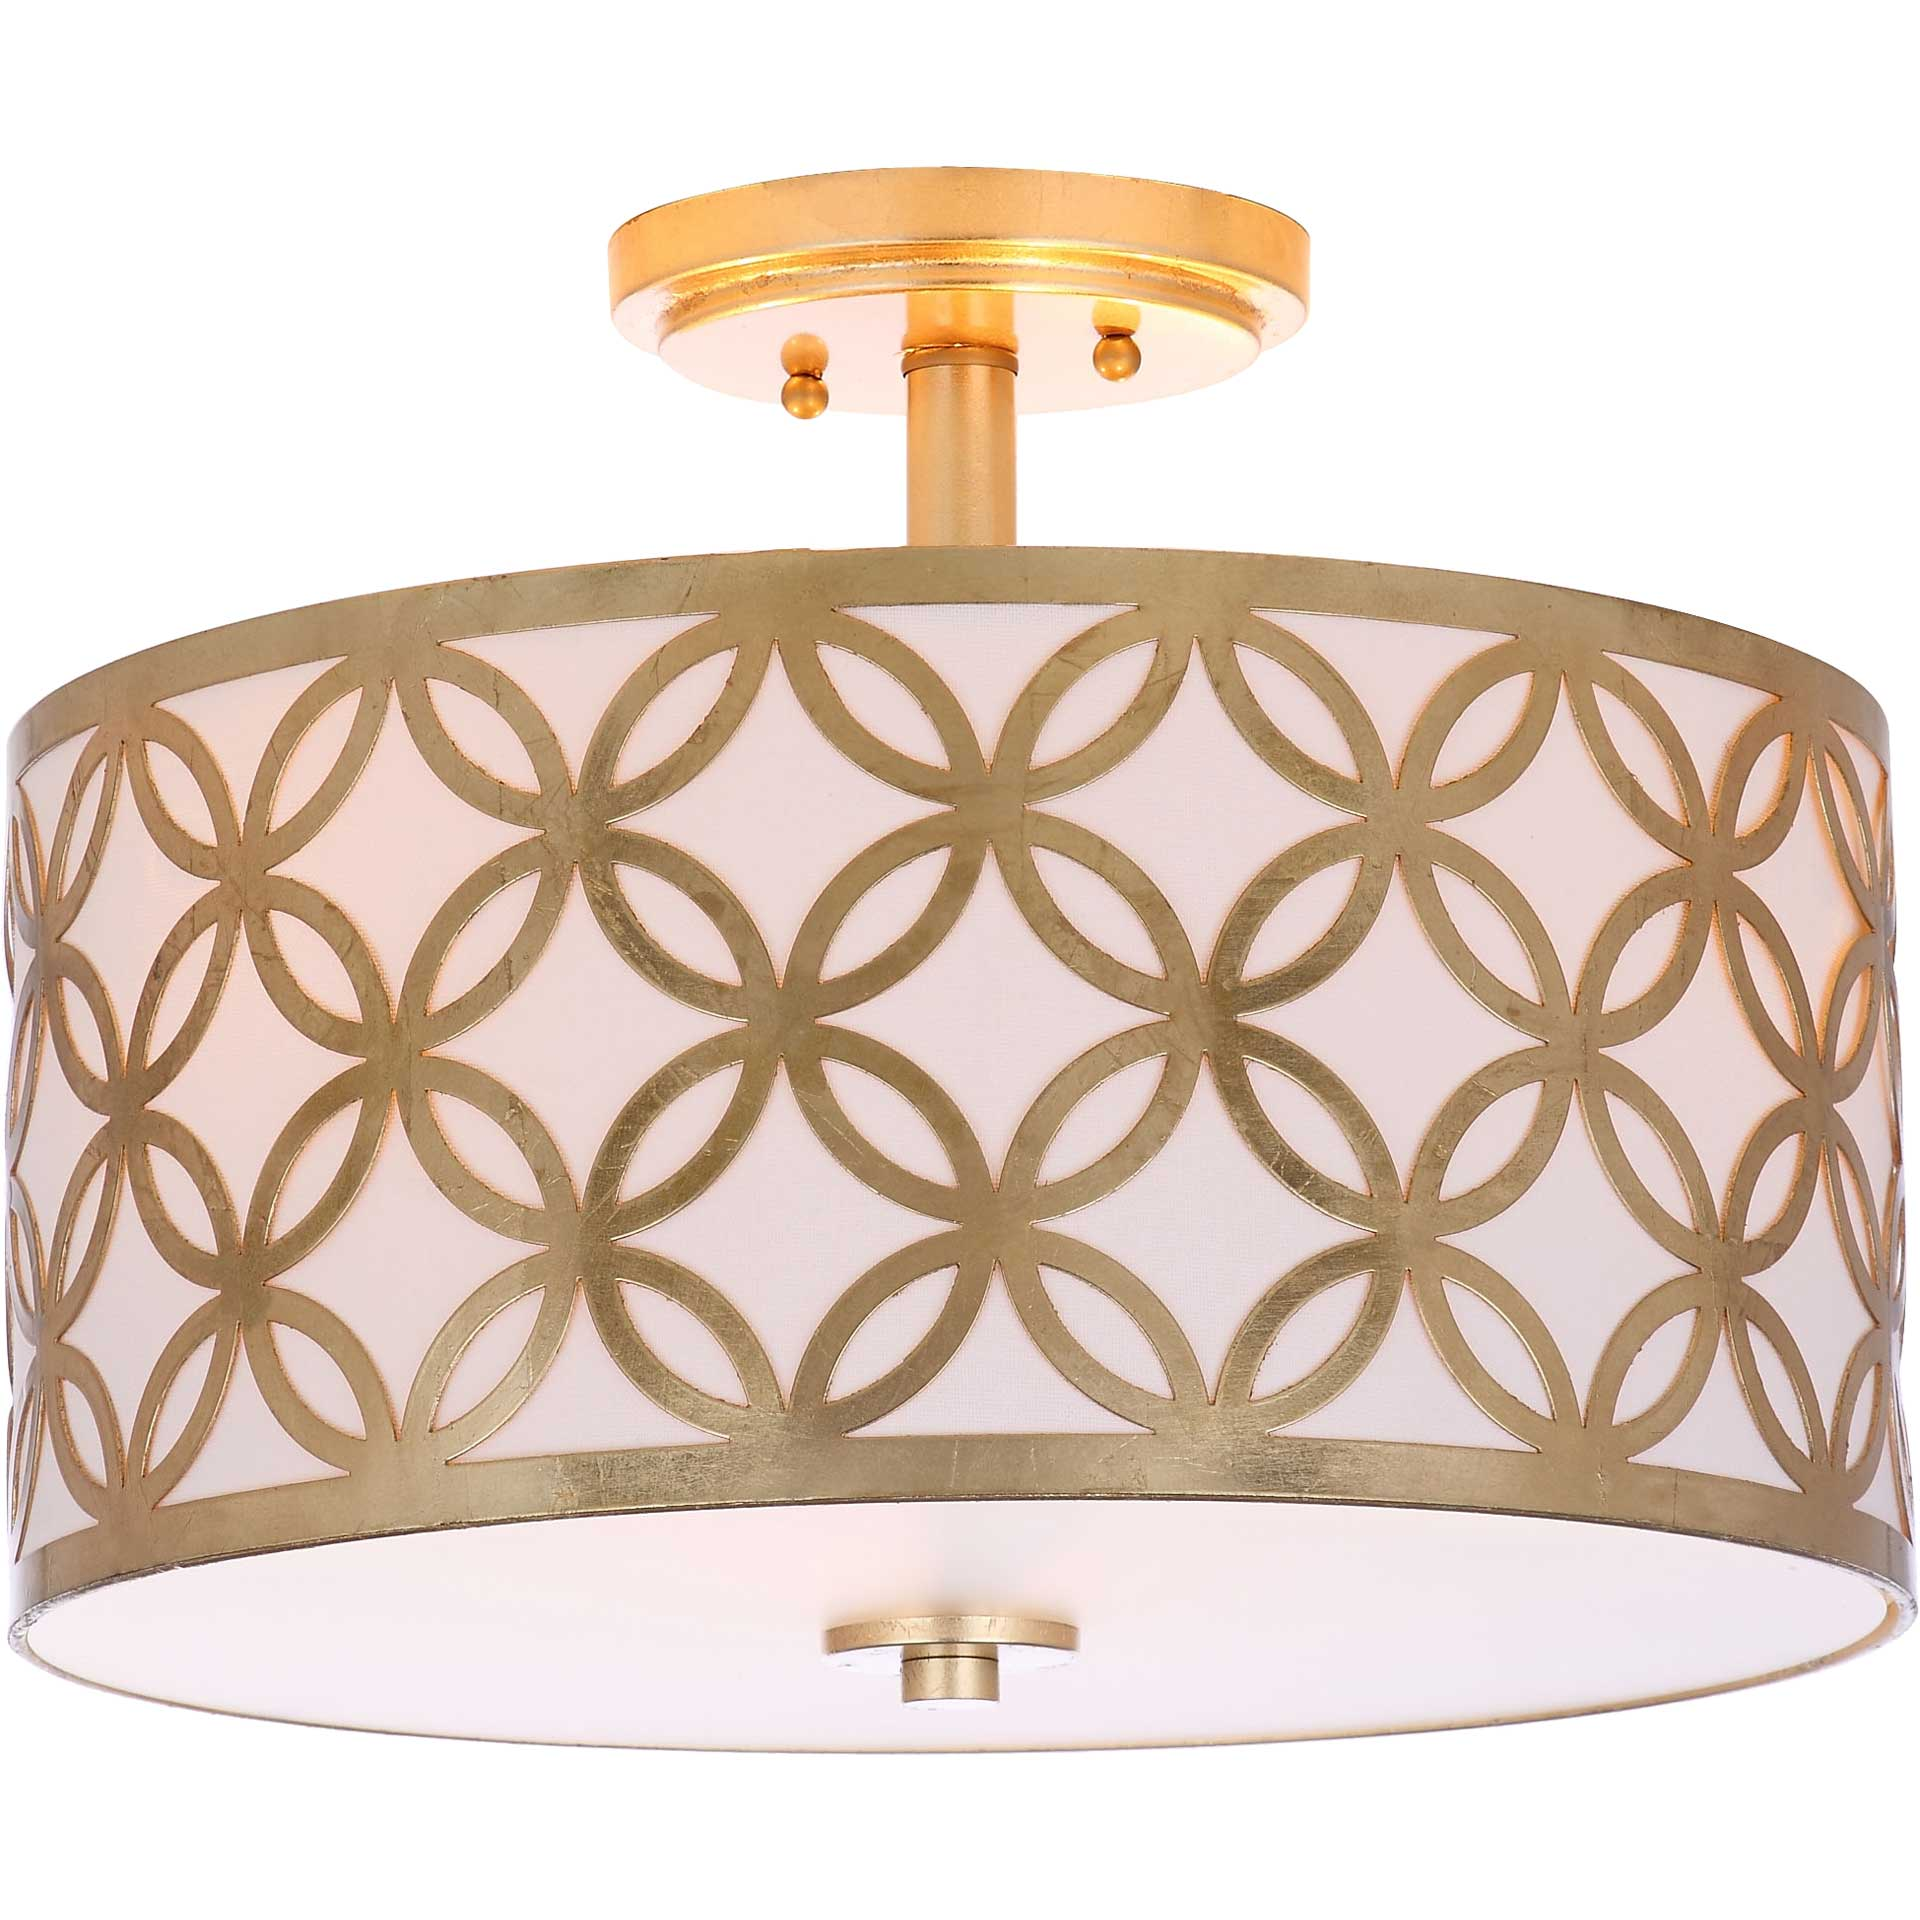 Celine Gold Flush Mount Gold